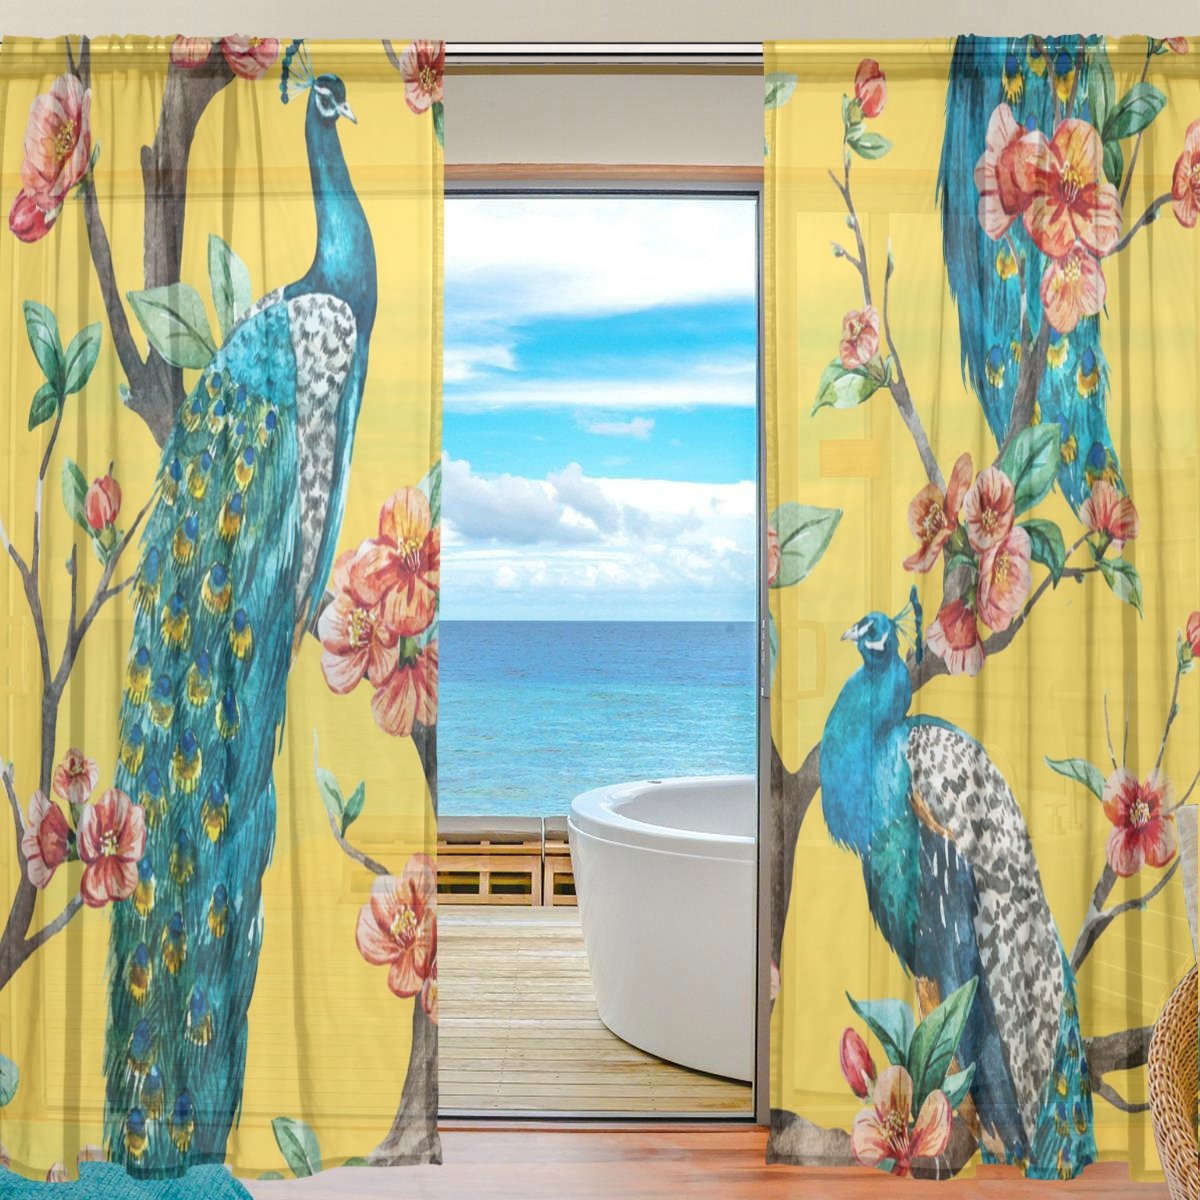 SEULIFE Window Sheer Curtain Tropical Flower Animal Peacock Tree Voile Curtain Drapes for Door Kitchen Living Room Bedroom 55x78 inches 2 Panels g2617175p113c127s169